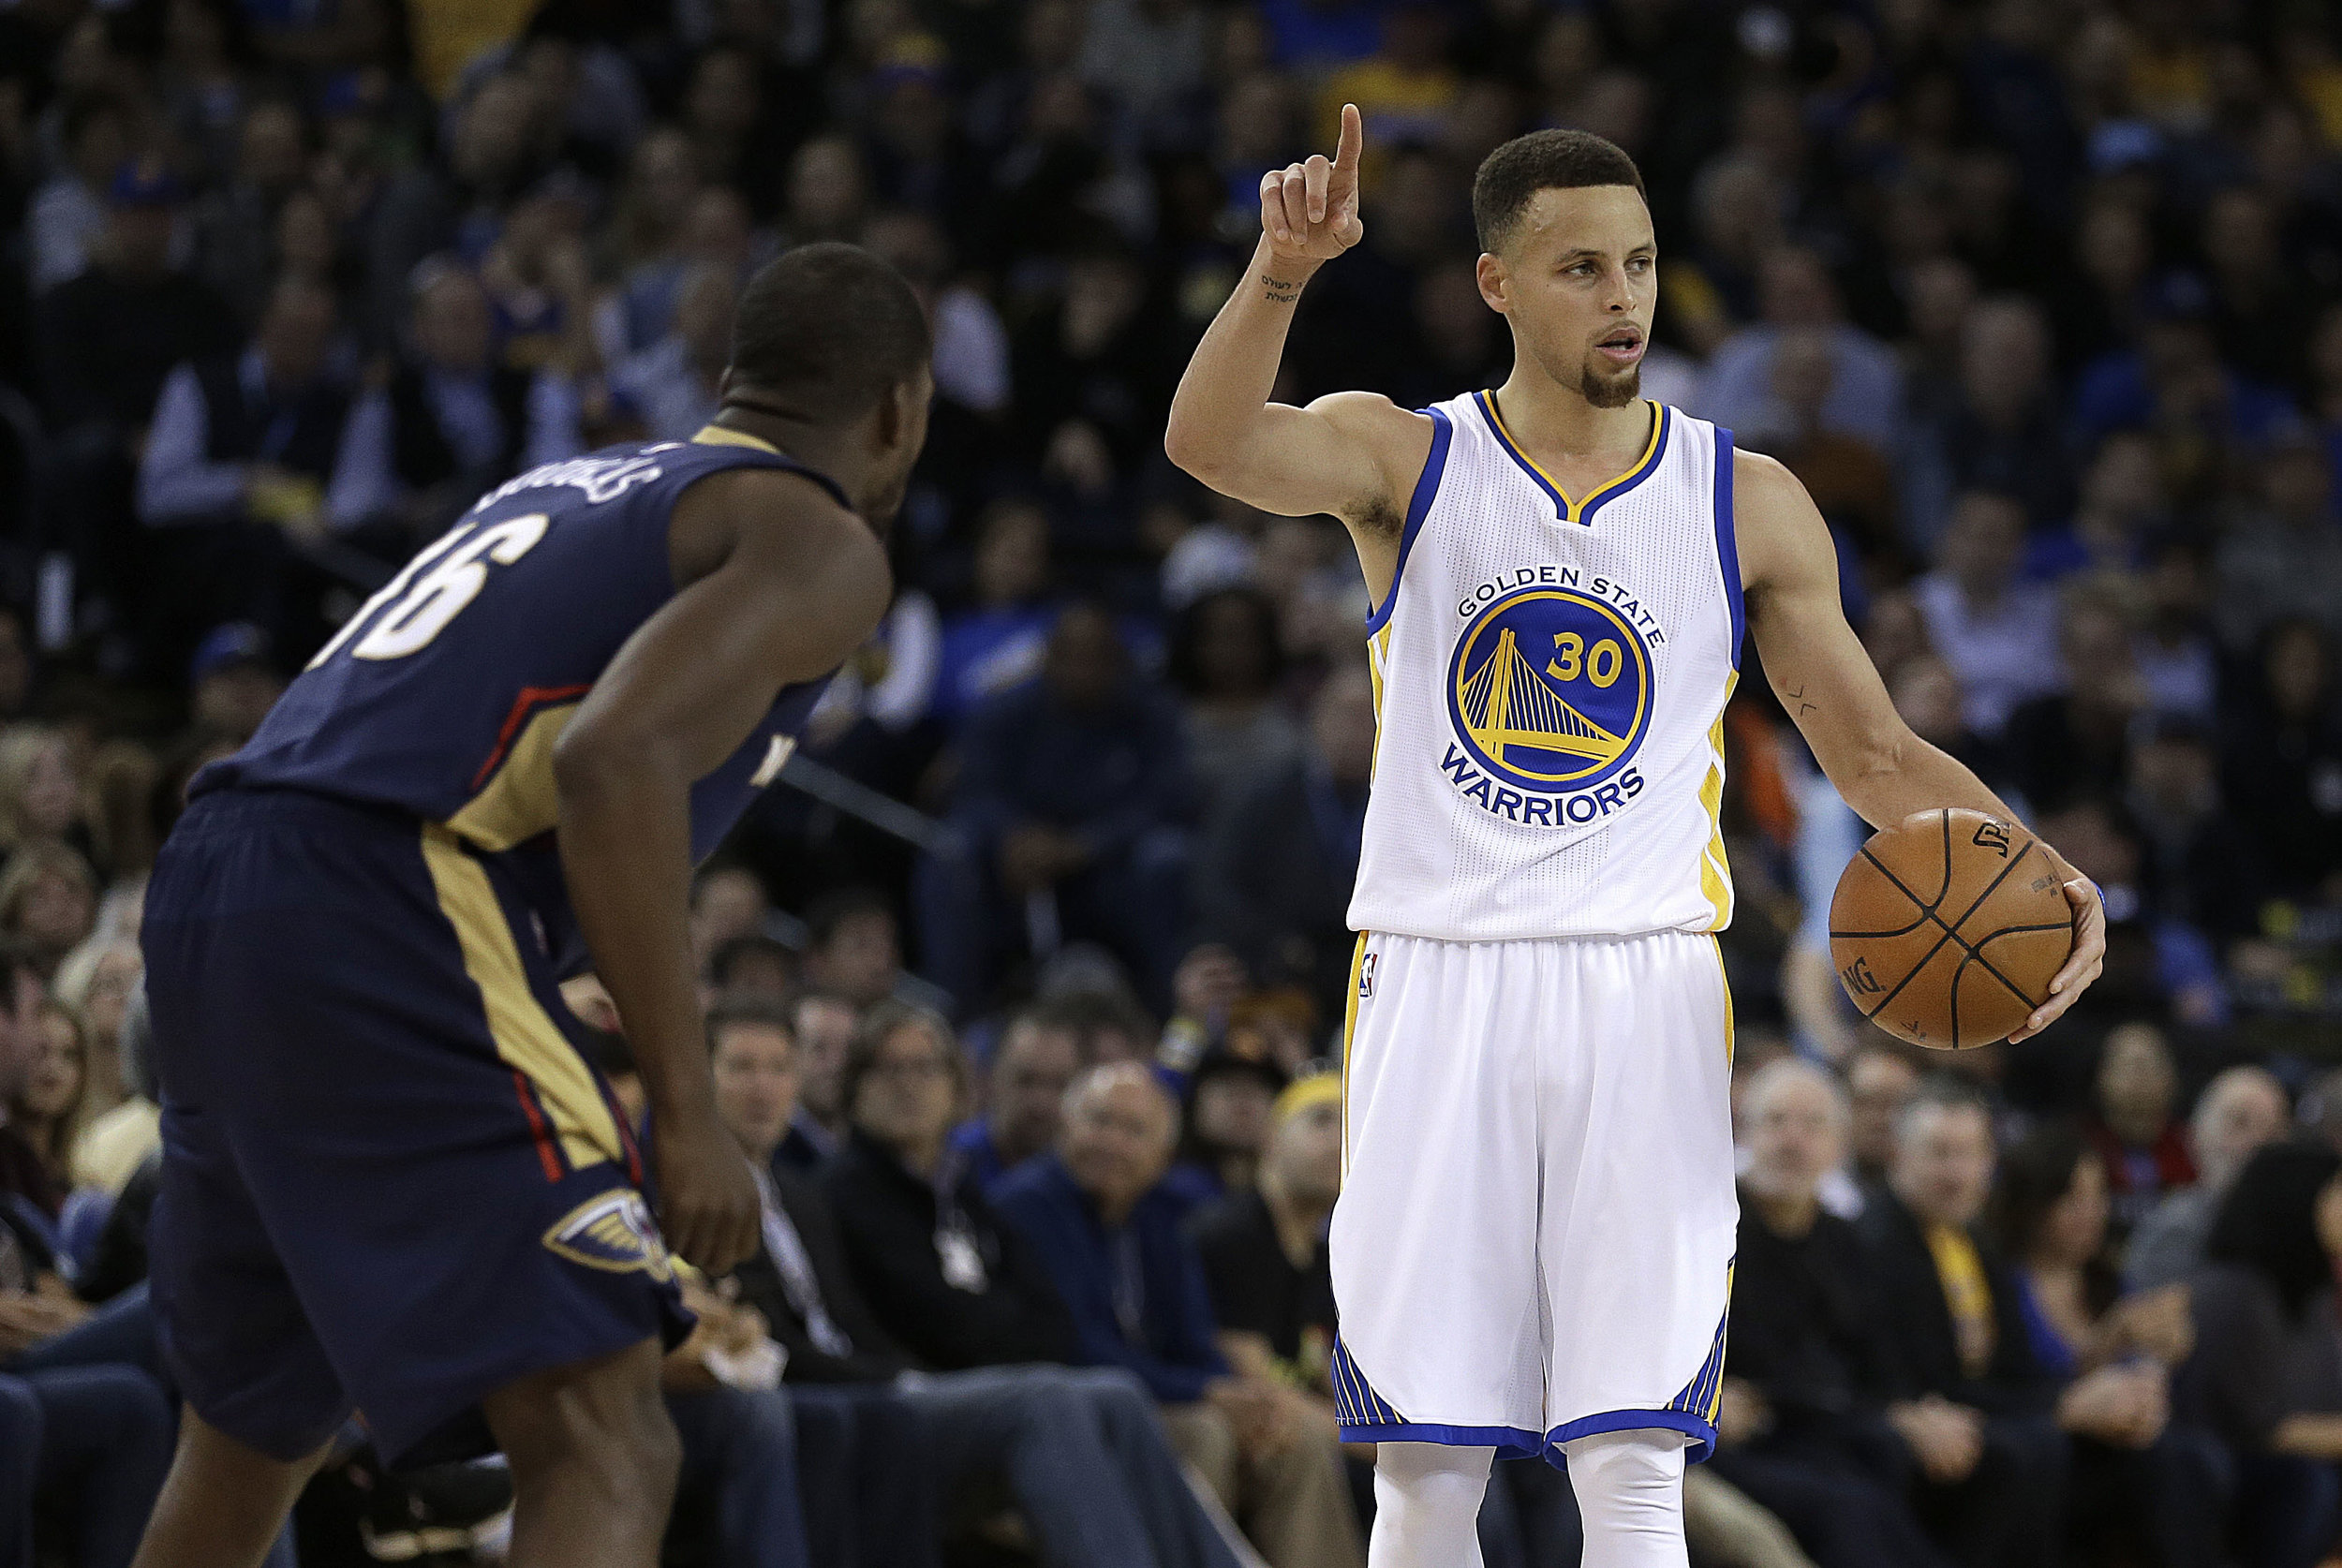 Stephen Curry, basketball player for the Golden State Warriors and apparent ISIS member. (Photo courtesy of AP.)